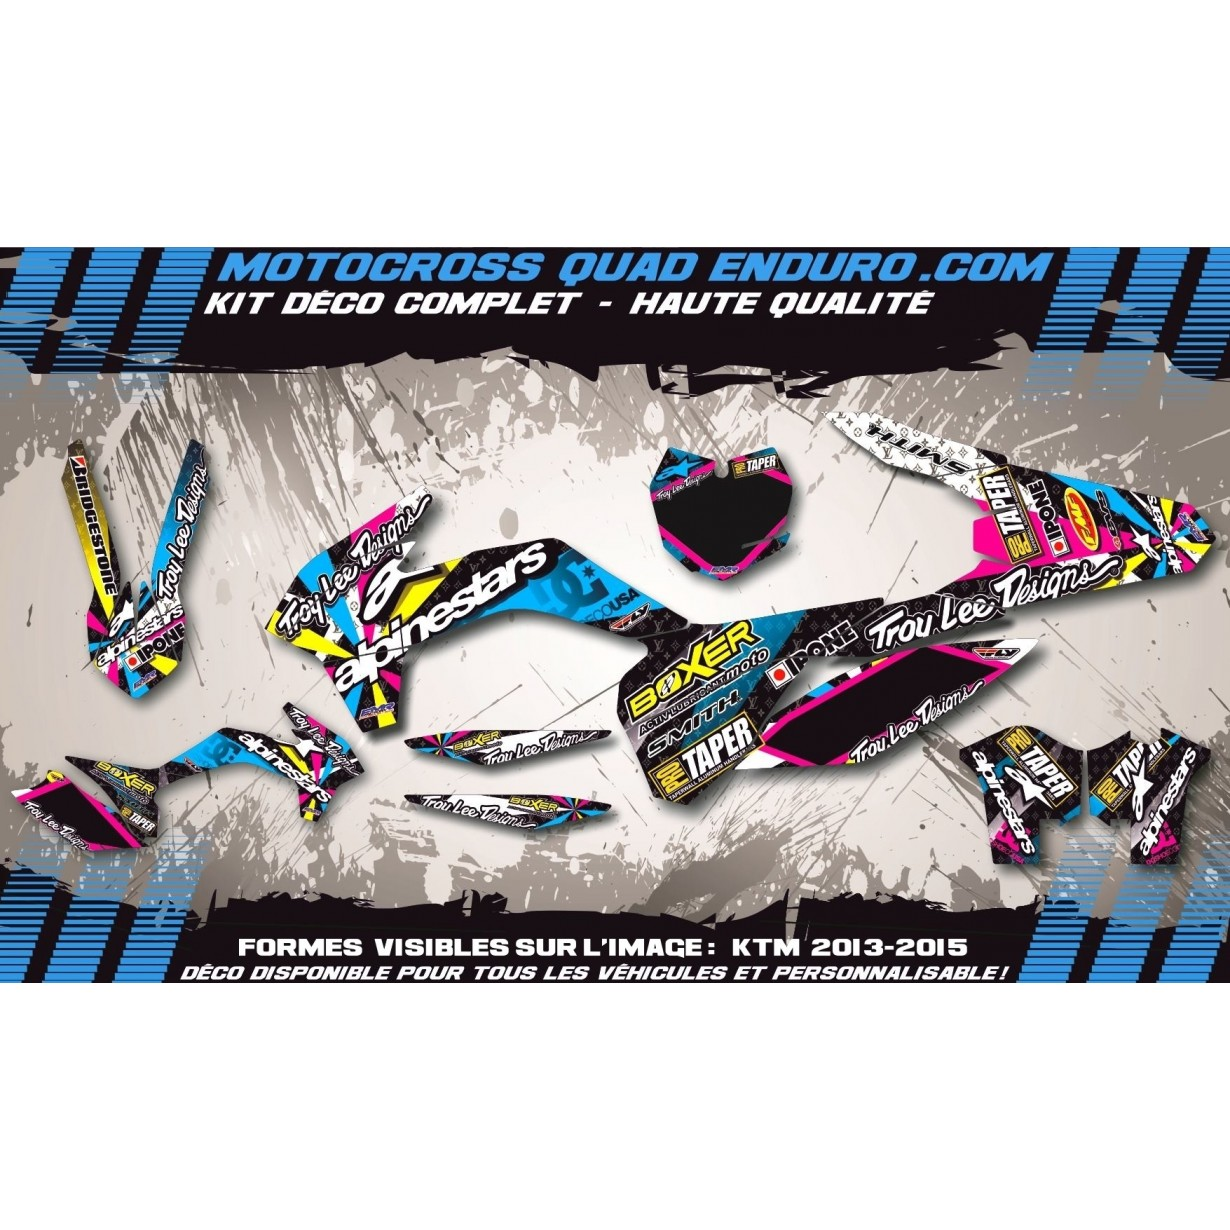 KIT DÉCO Perso 250 CR 95-96 ALPINESTARS MA4A